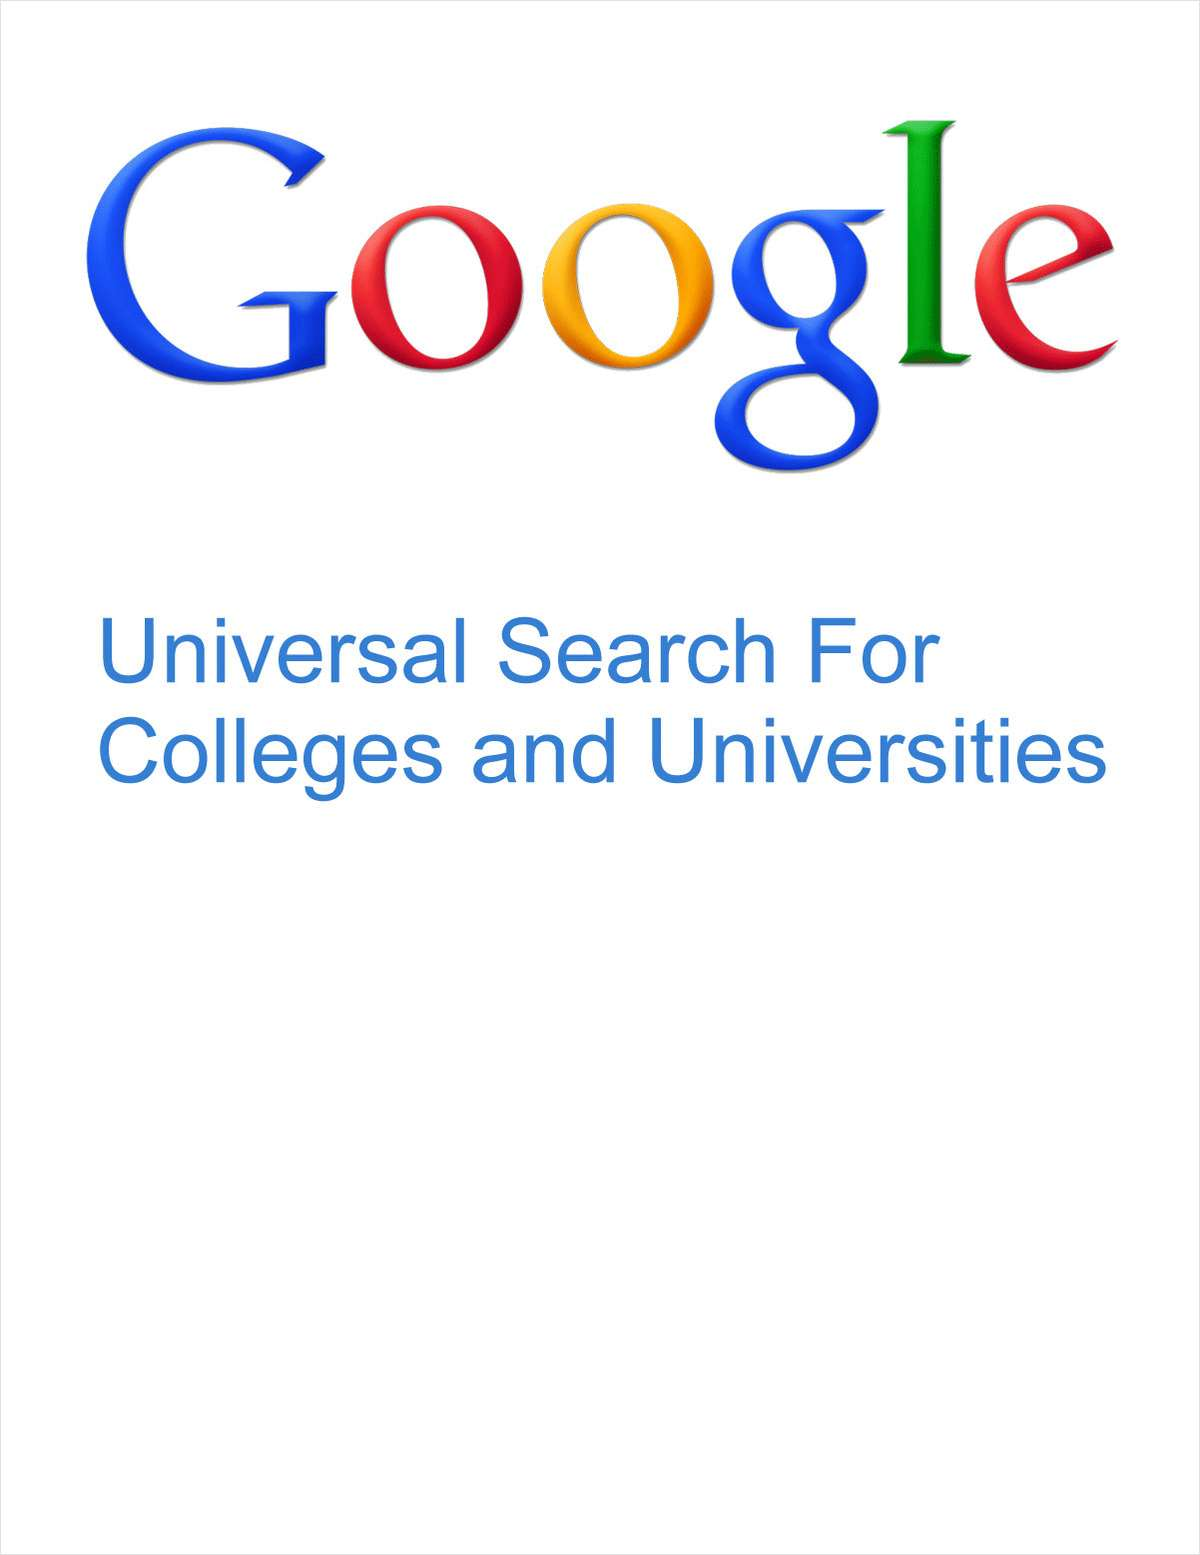 Google's Universal Search for Universities